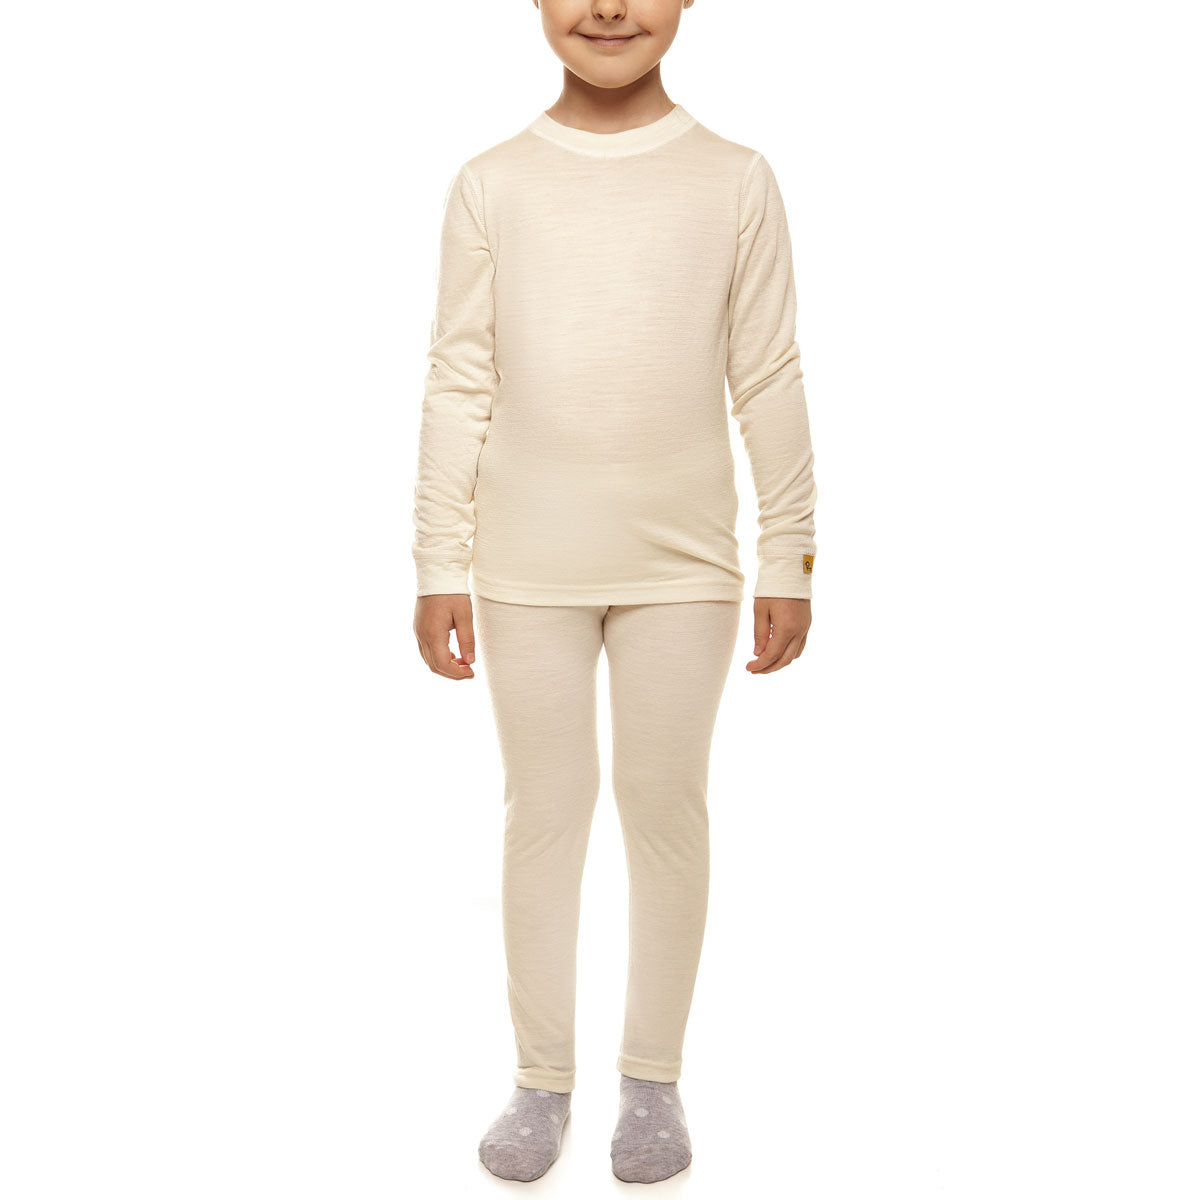 Kids' Merino 160 Long Sleeve Set Natural